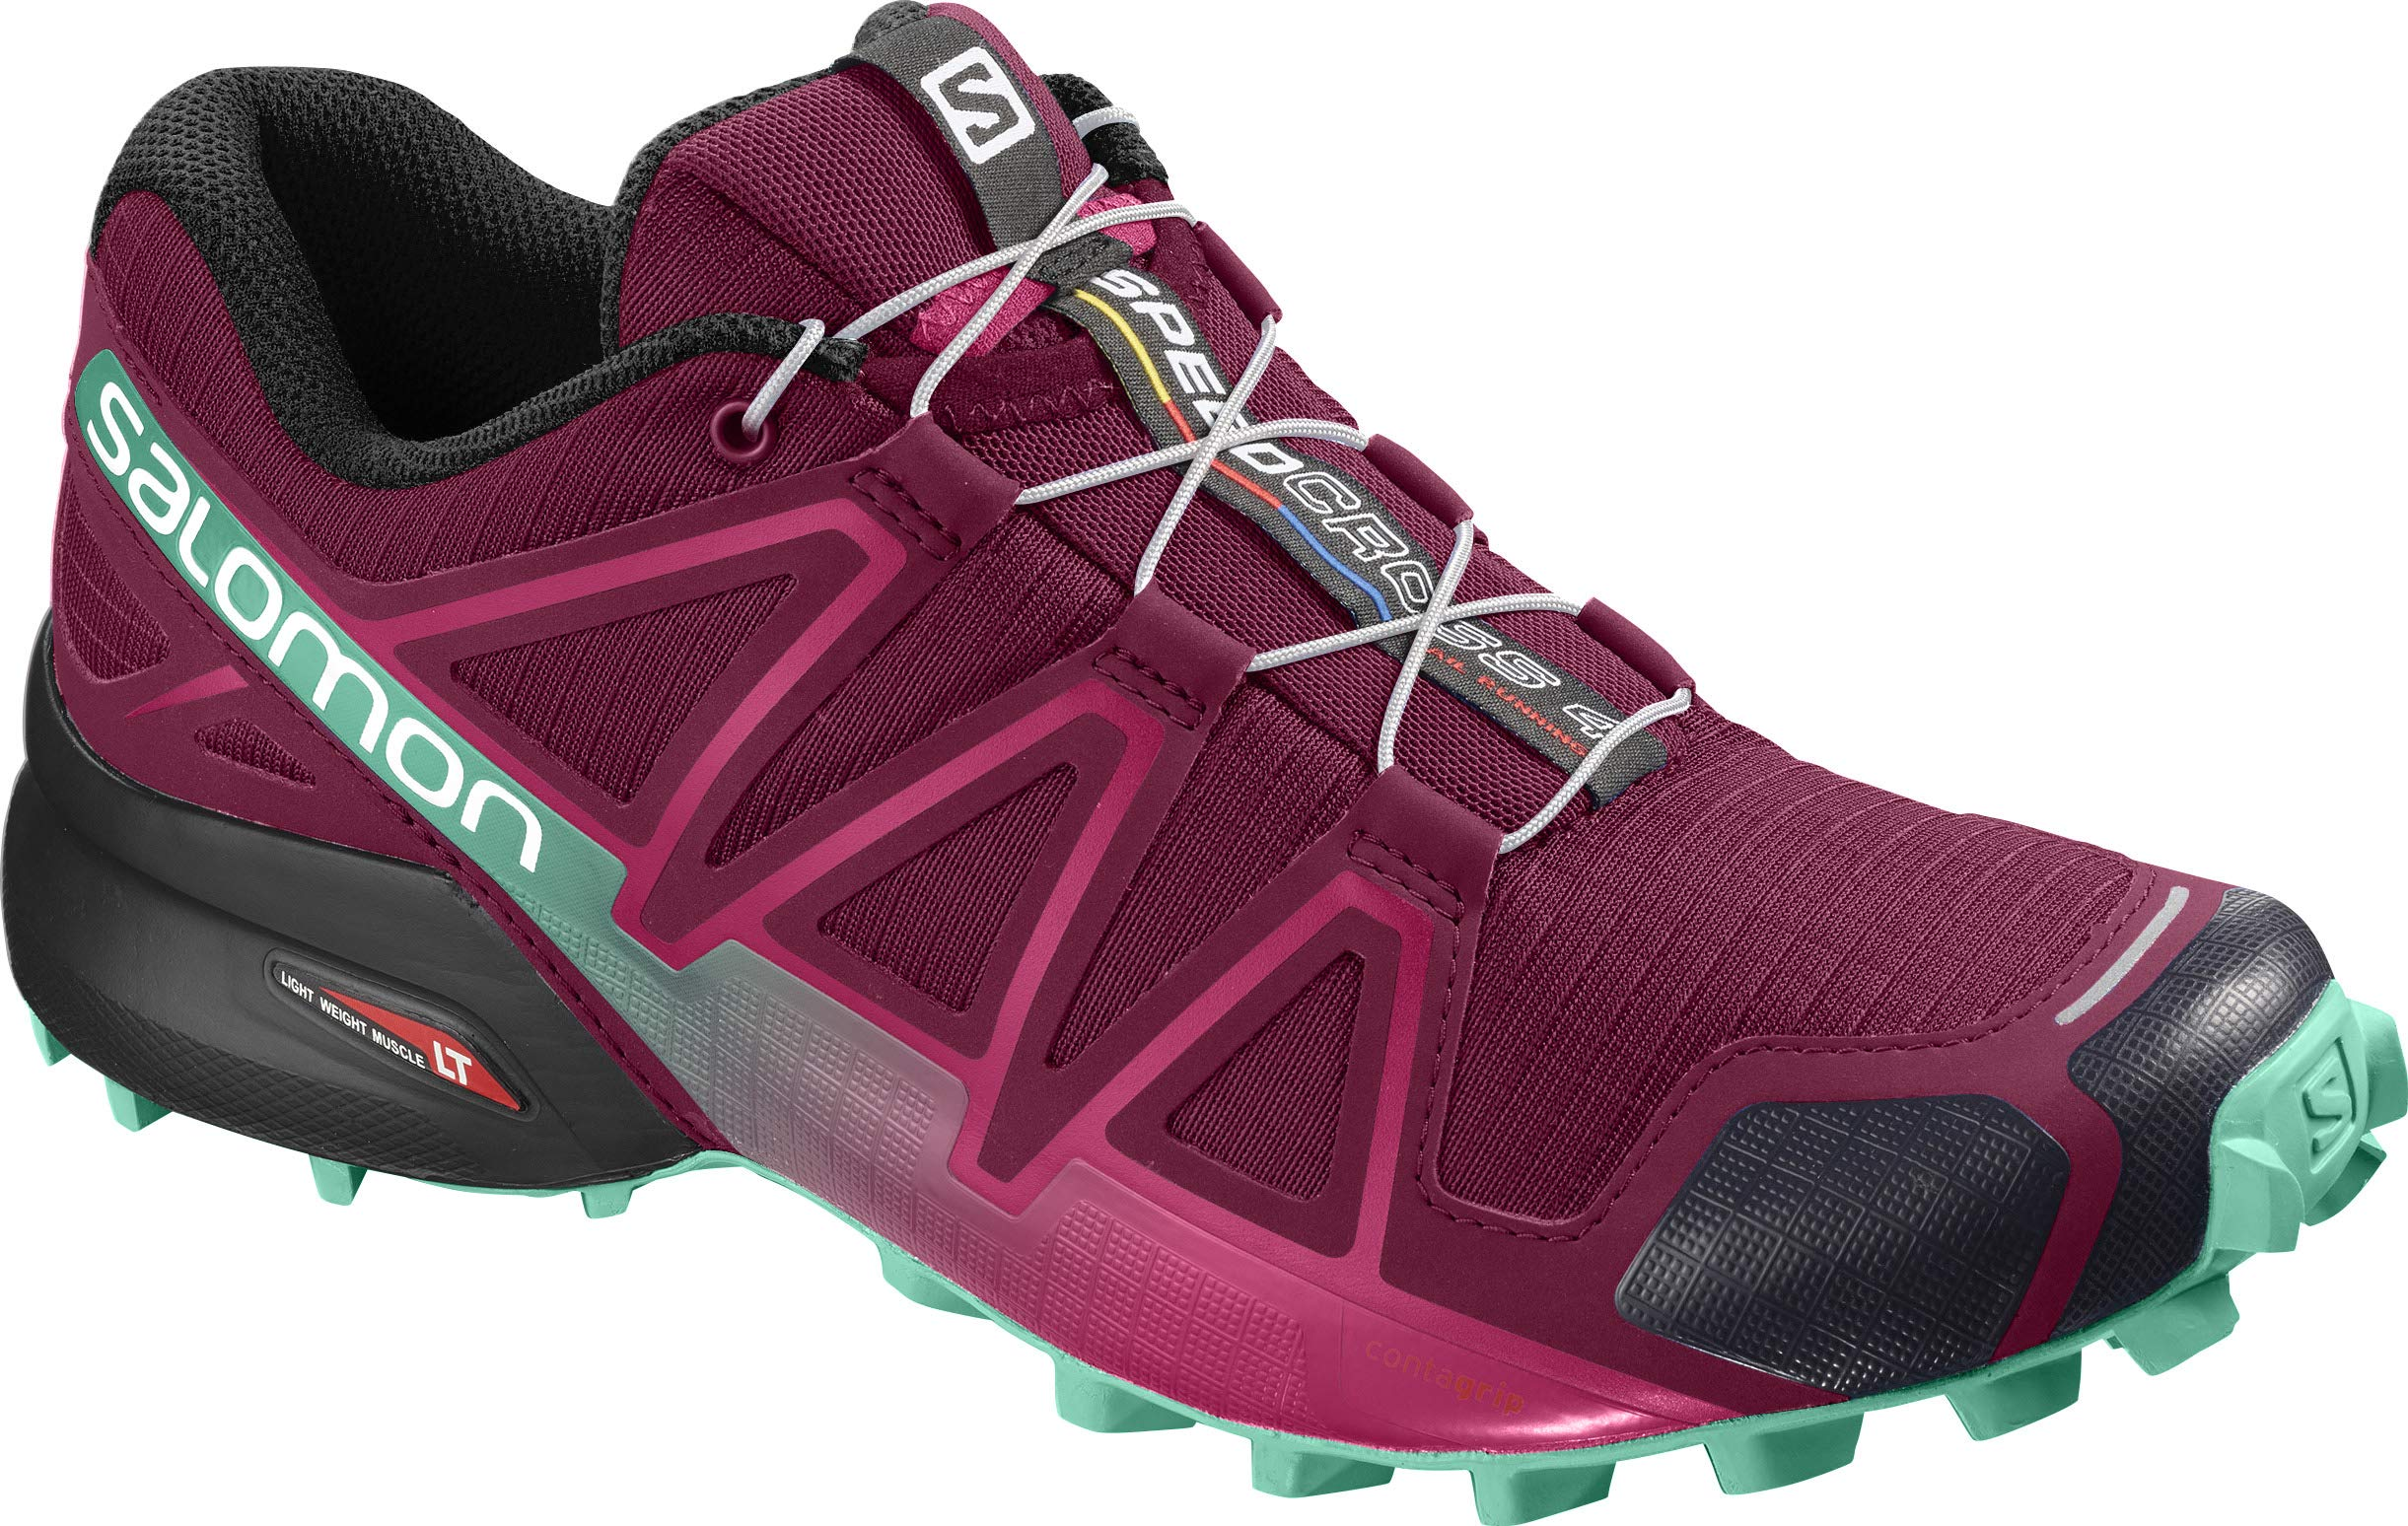 Salomon Women's Speedcross 4 W Trail Running Shoe Beet red/Electric Green/Black 5.5 Standard US Width US by Salomon (Image #1)